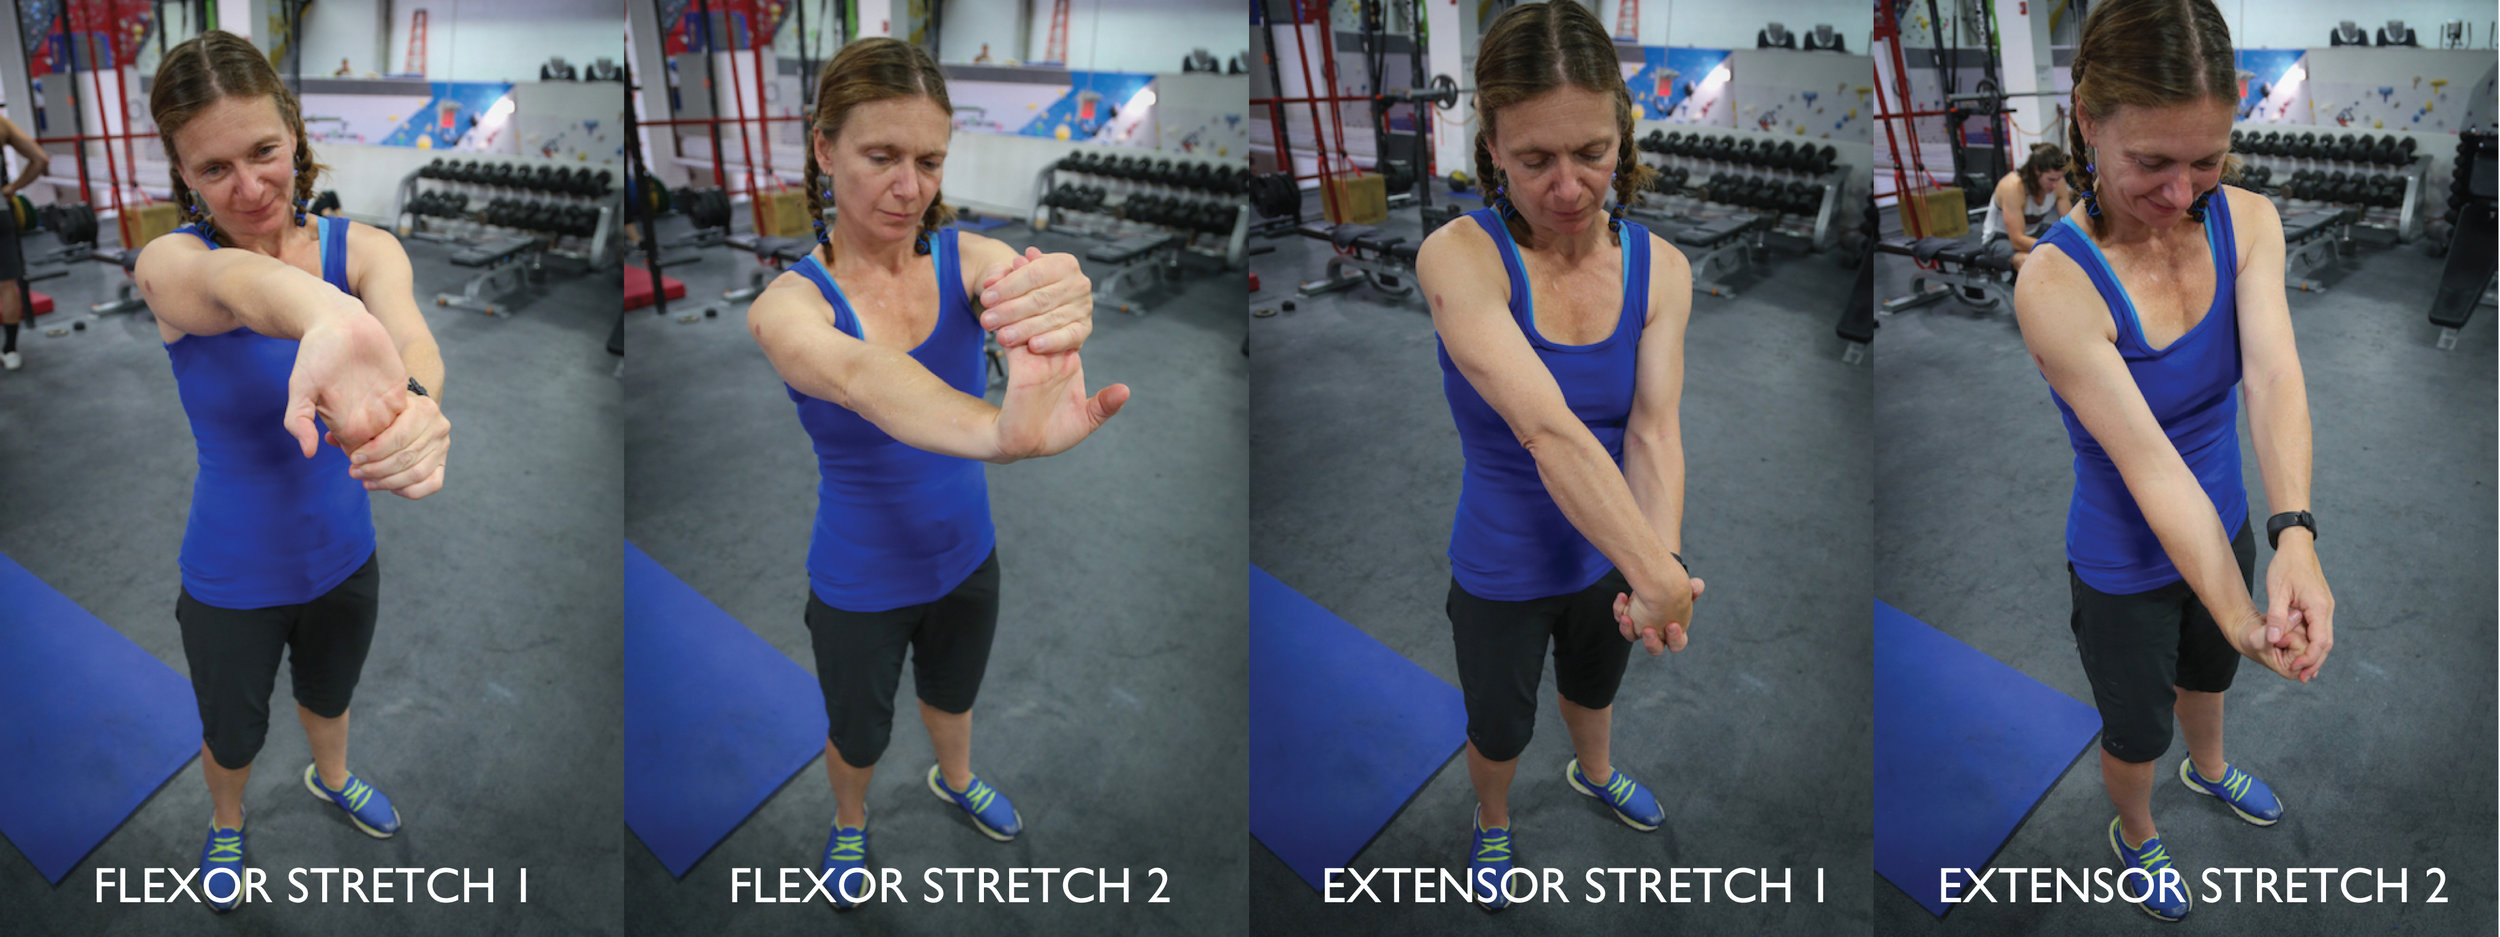 Stretching for Ice Climbing Flexor Extensor.jpg